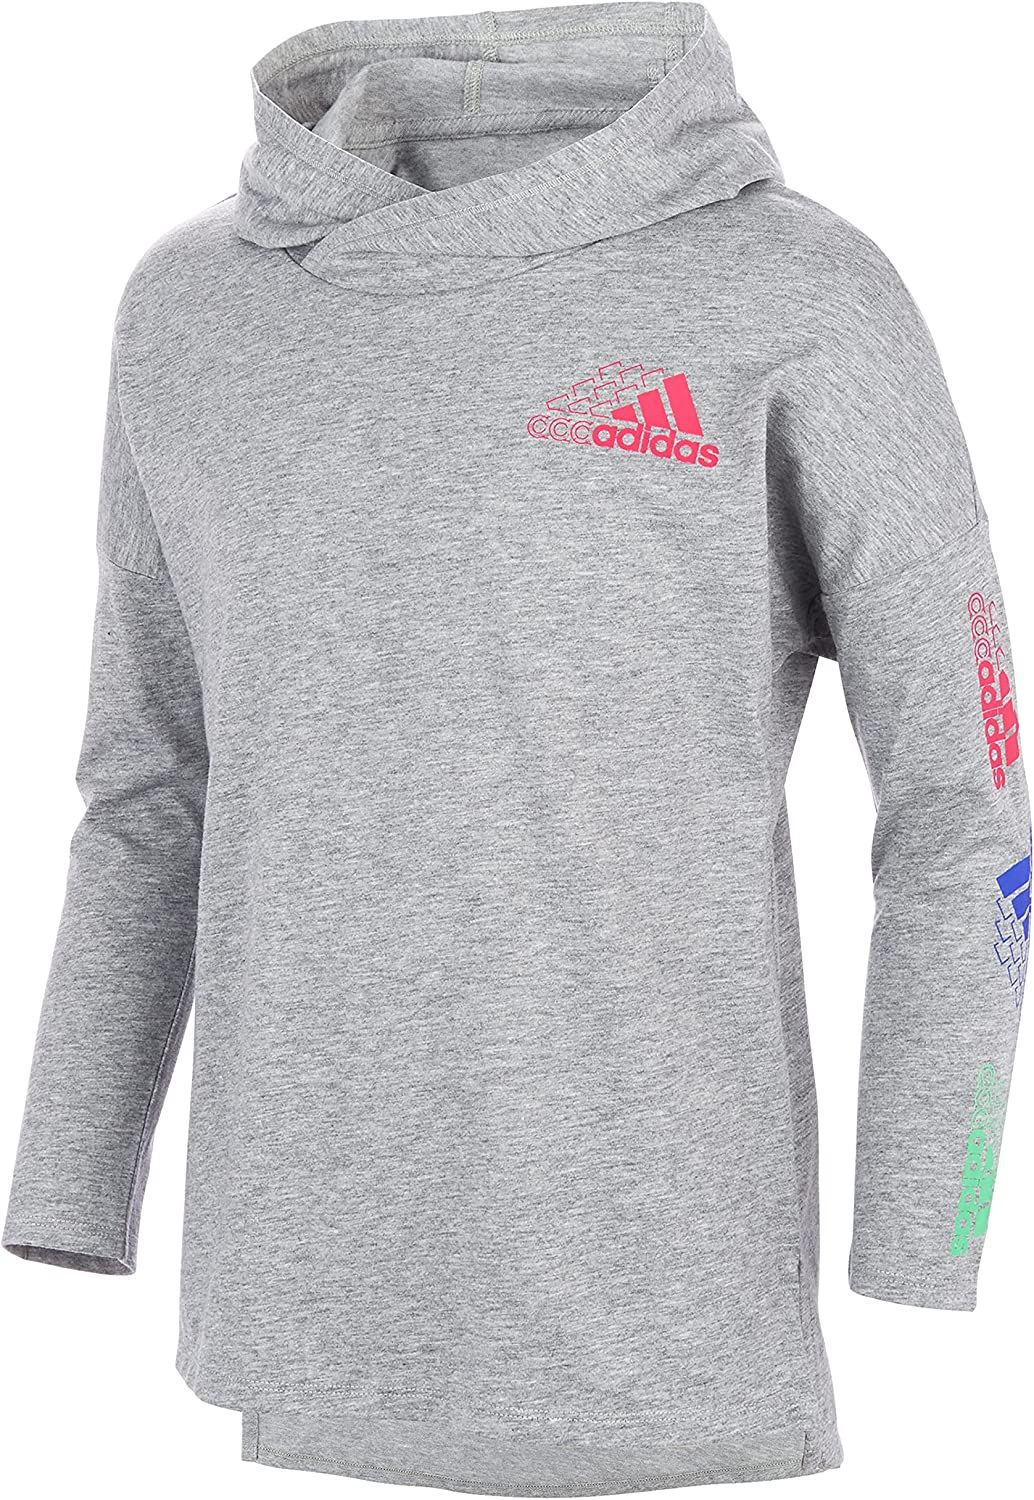 adidas Girls' Long Ultra-Cheap Deals Sleeve Graphic 4 years warranty Tee Heather Hooded